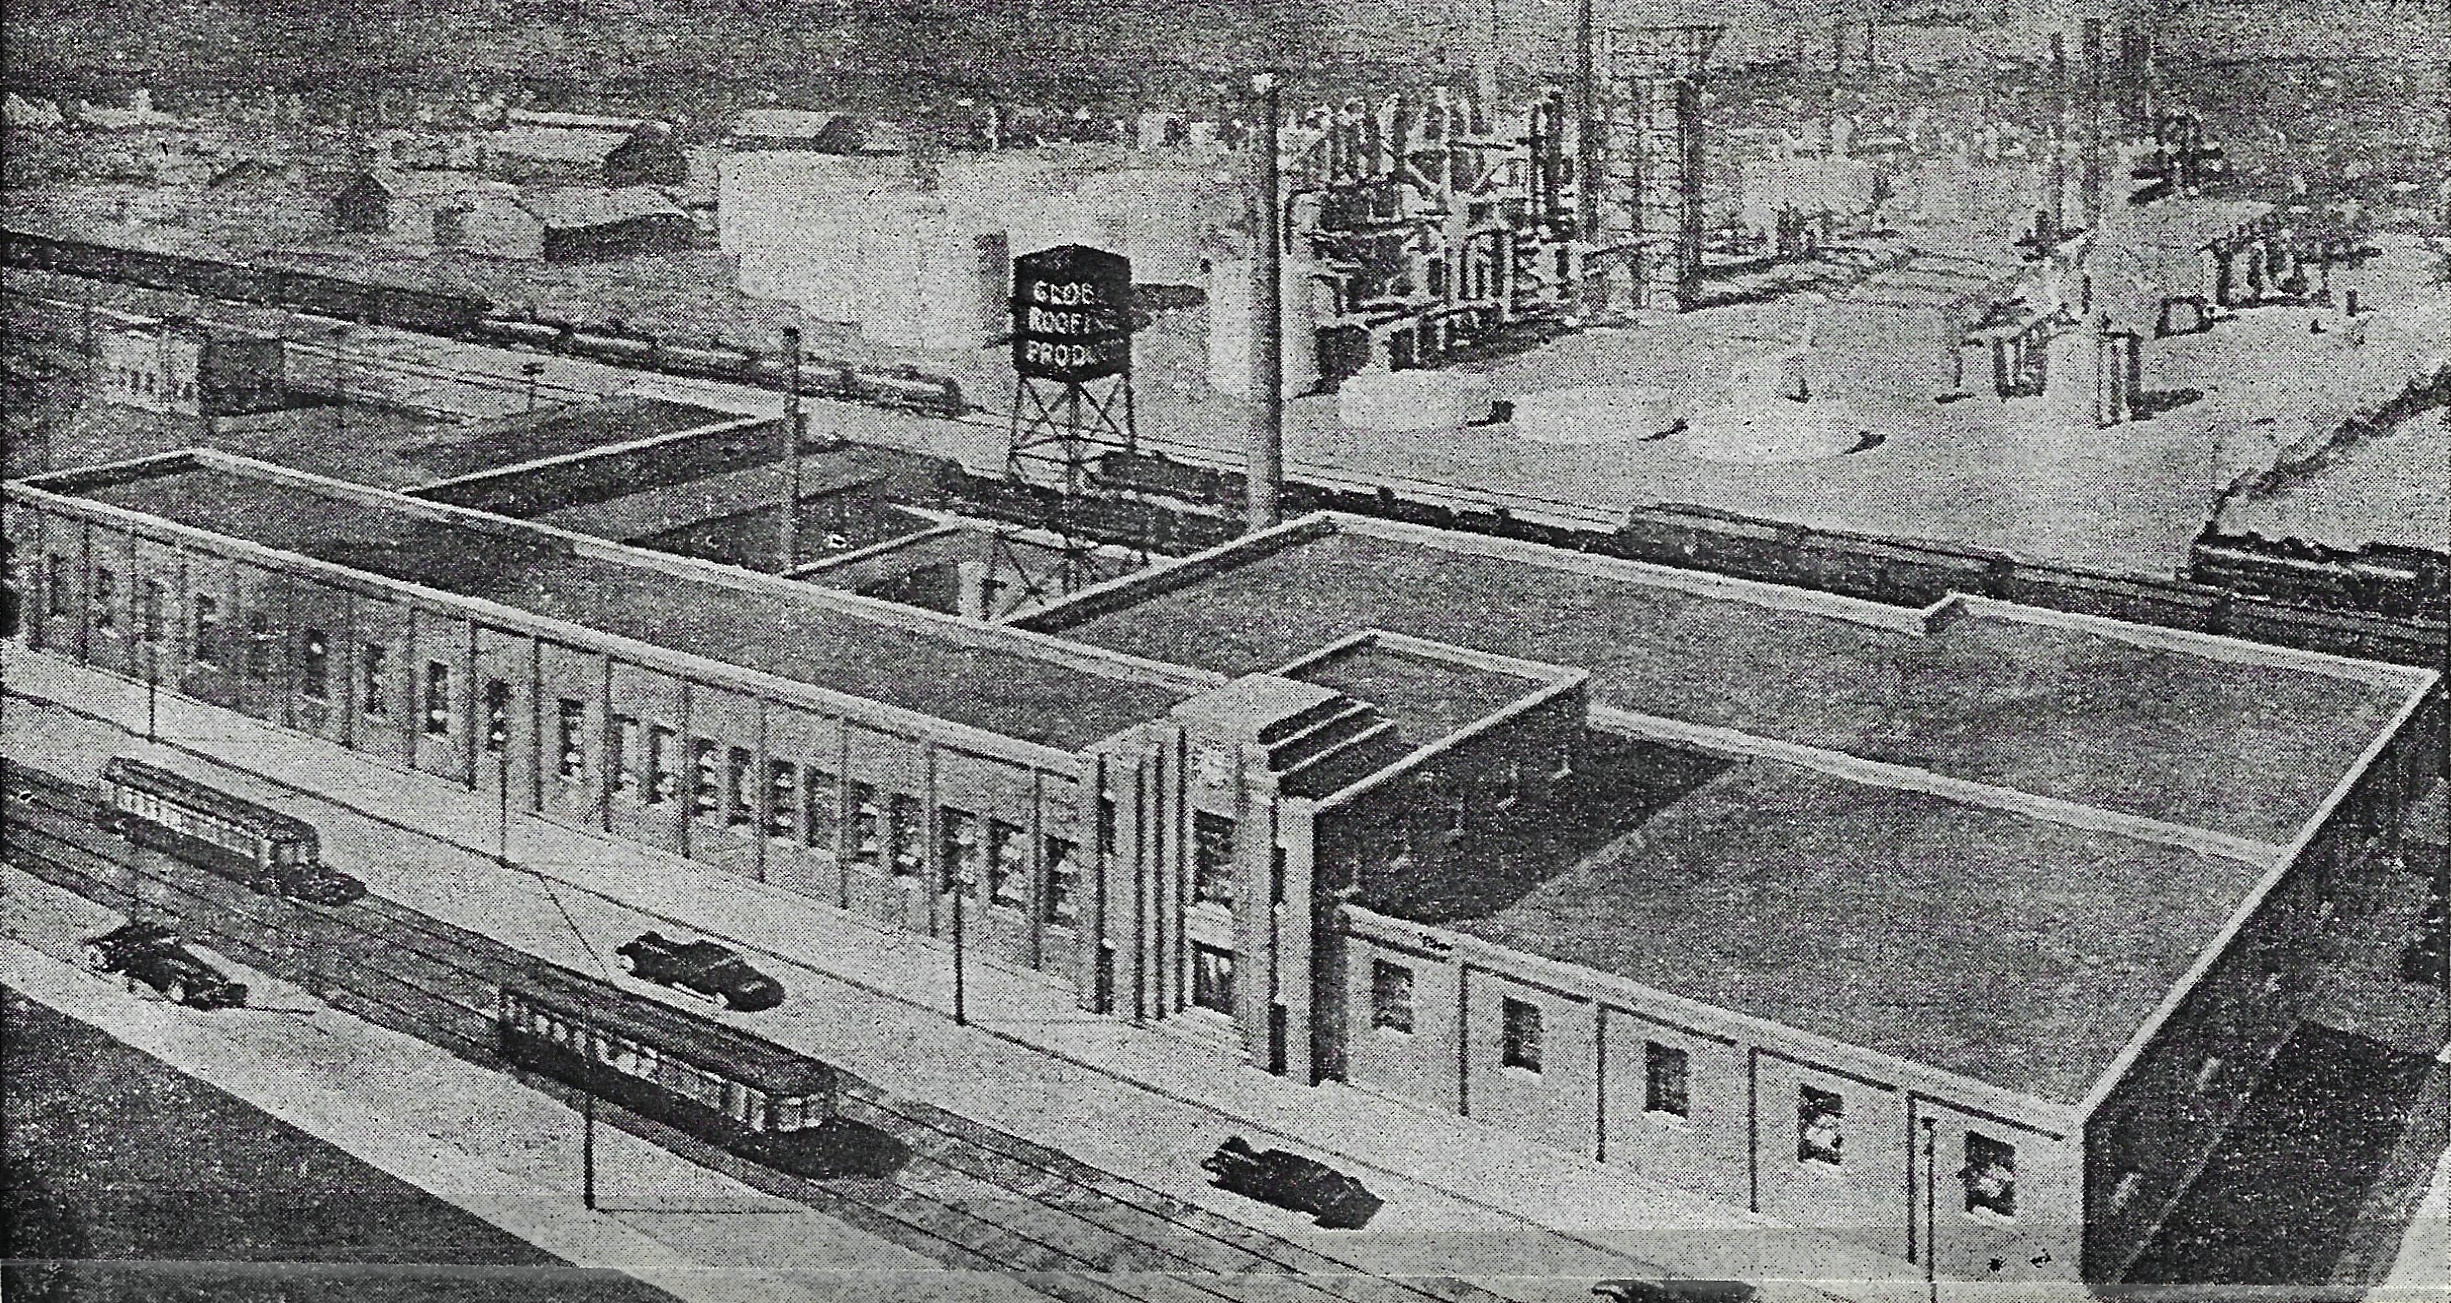 An artist drew this sketch of the Globe Roofing plant before it opened in 1937. Notice the street cars running on White Oak Avenue, in front of the Globe plant.